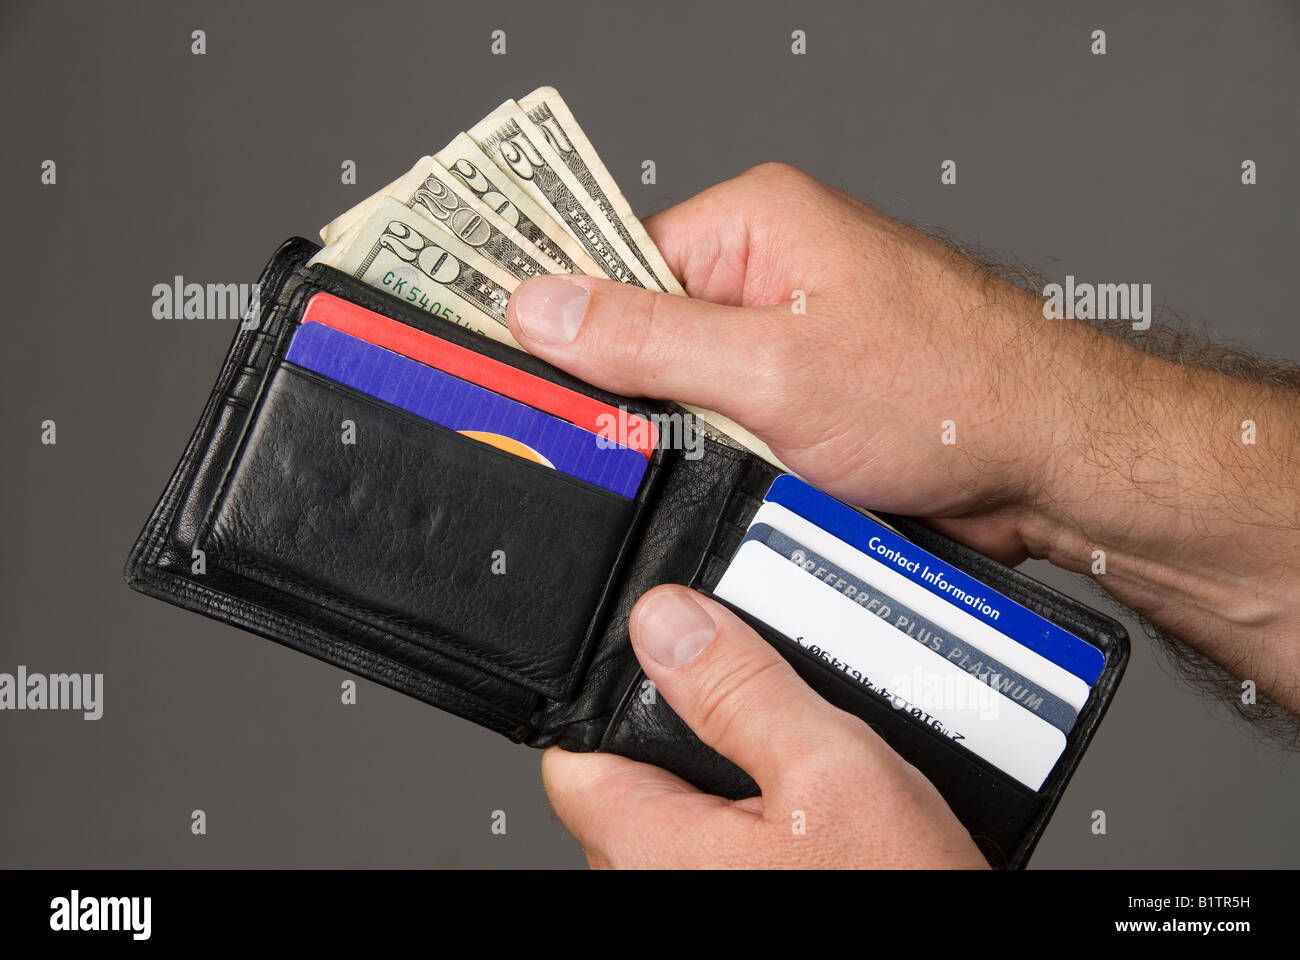 Dishing out cash from a leather wallet to pay bills - Stock Image